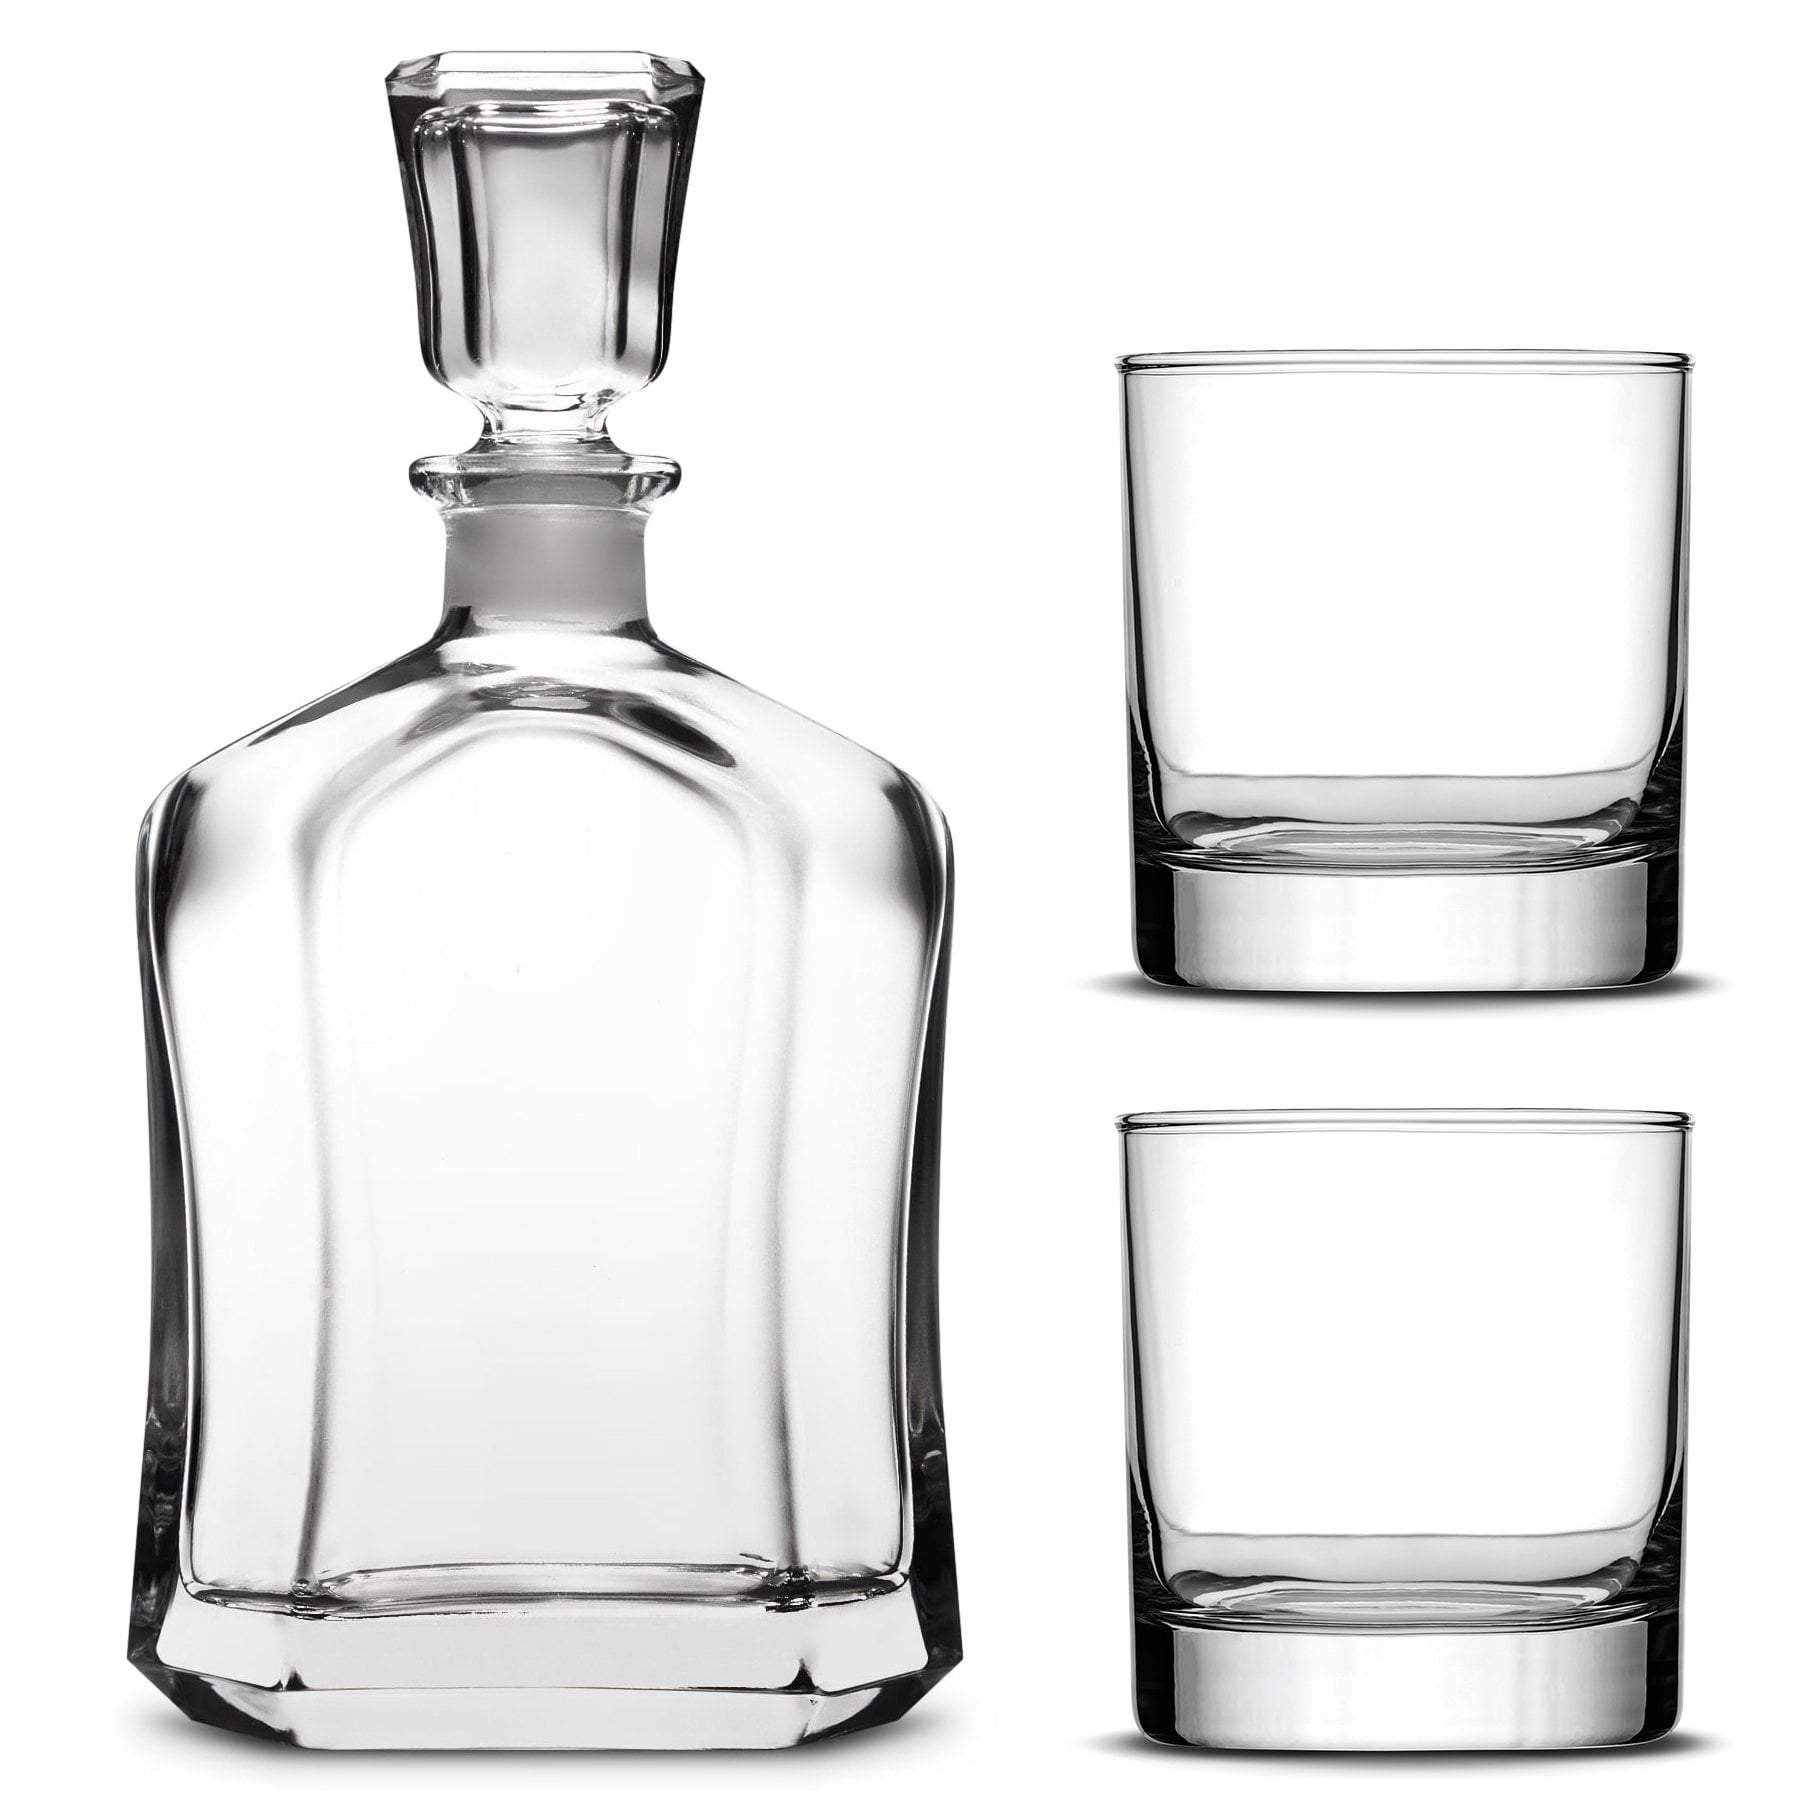 Custom Etched Refillable Capital Decanter with Set of 2 Custom Whiskey Glasses by Integrity Bottles